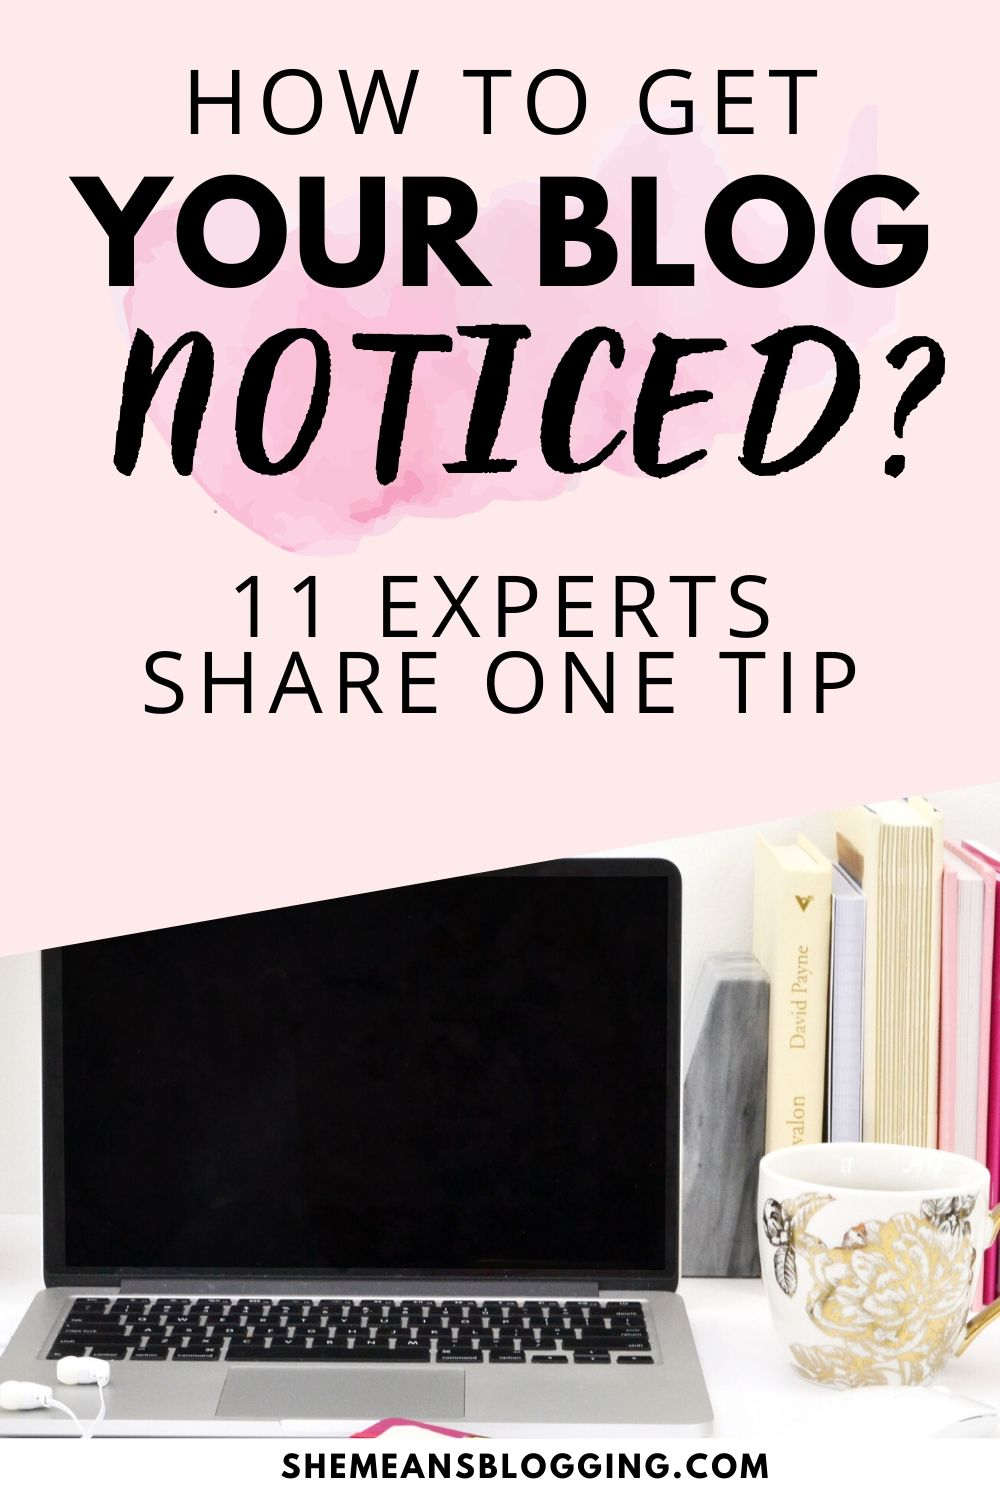 How to get your blog noticed? What are some ways to get your blog noticed? Here are top blogging tips from 11 blogging experts! Learn the best blogging tips #bloggingtips #bloggingforbeginners